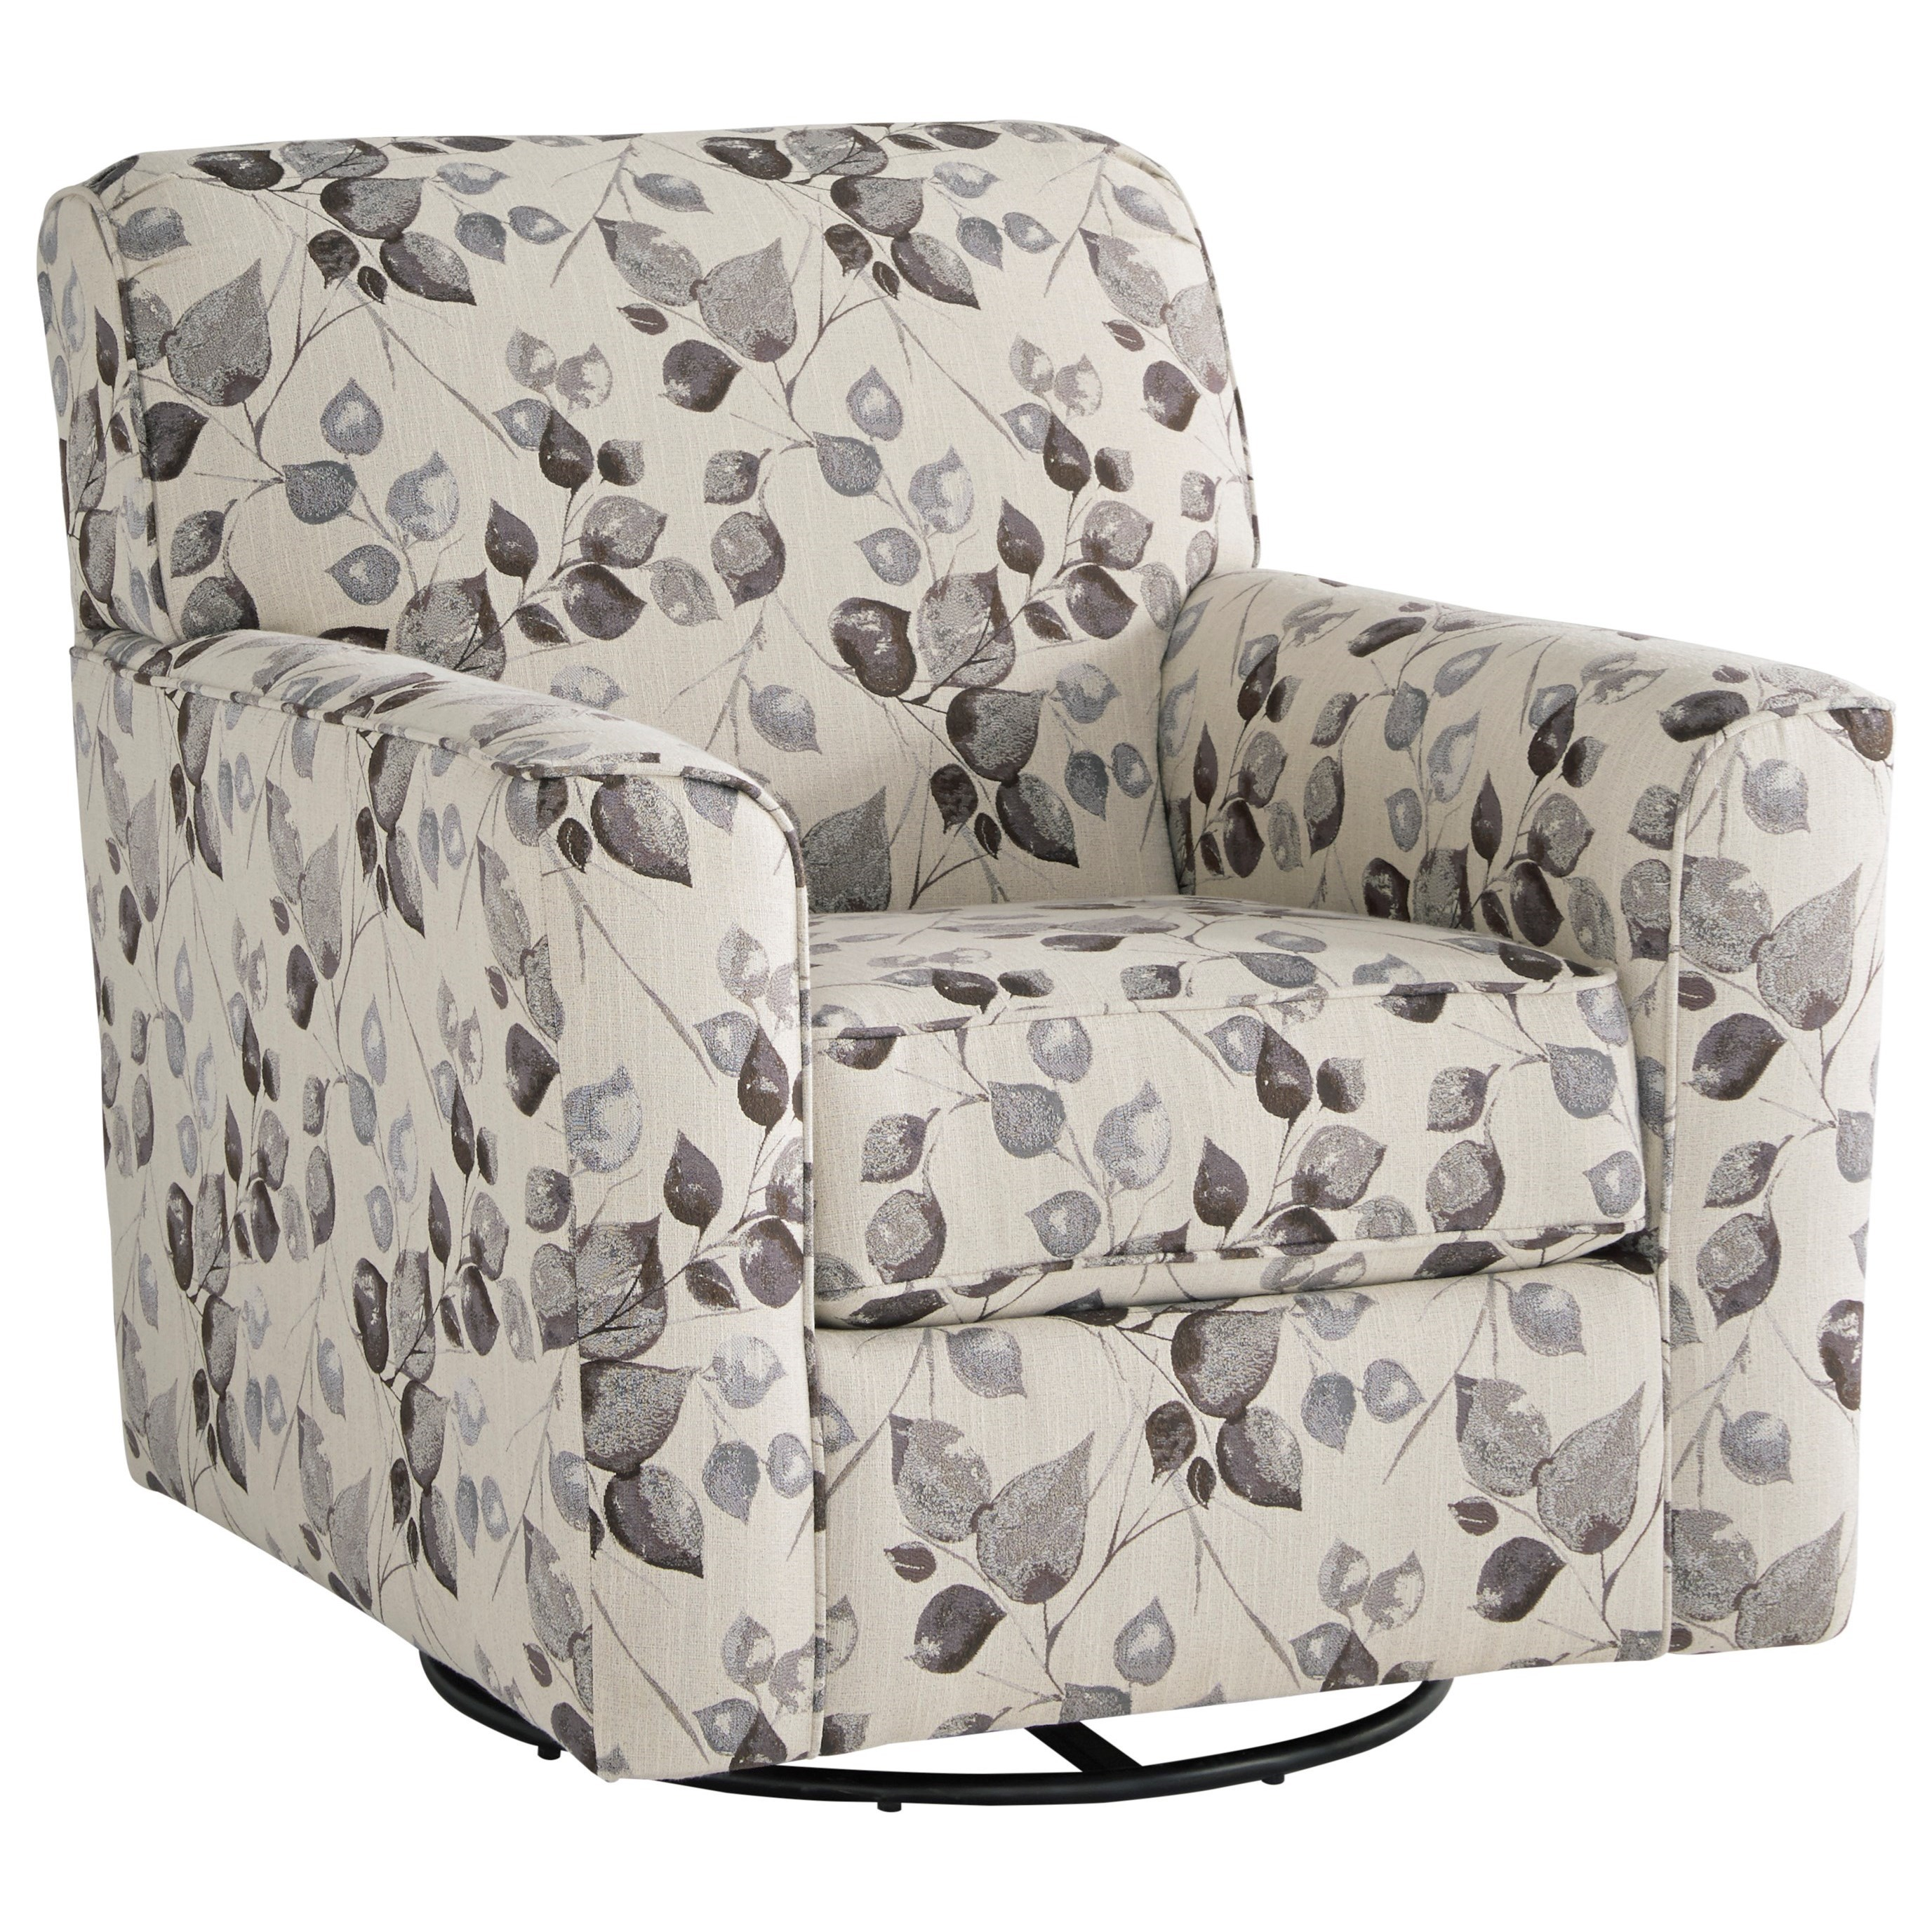 Abney Swivel Accent Chair by Benchcraft at Furniture Superstore - Rochester, MN